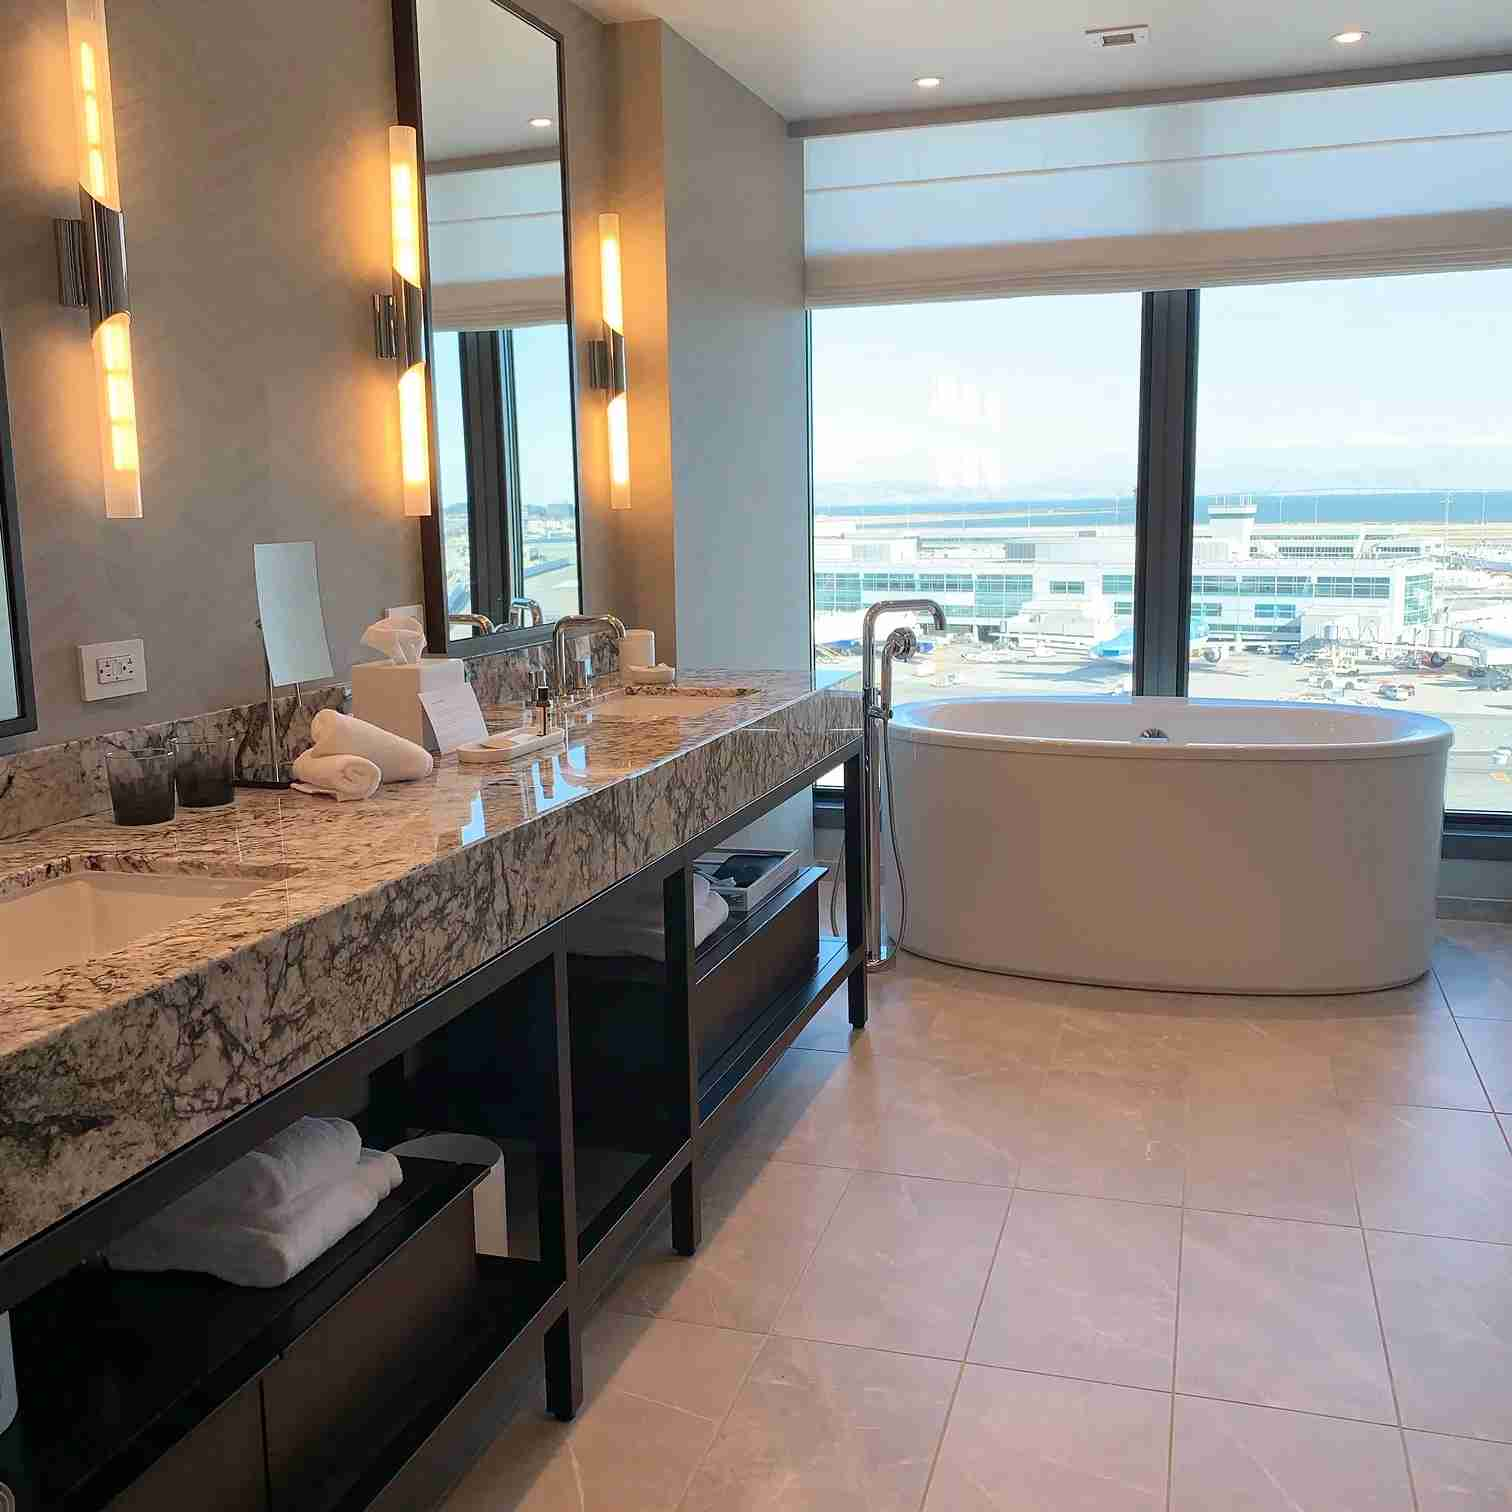 A bathroom at the new Grand Hyatt SFO. Photo by Harriet Baskas for TPG.